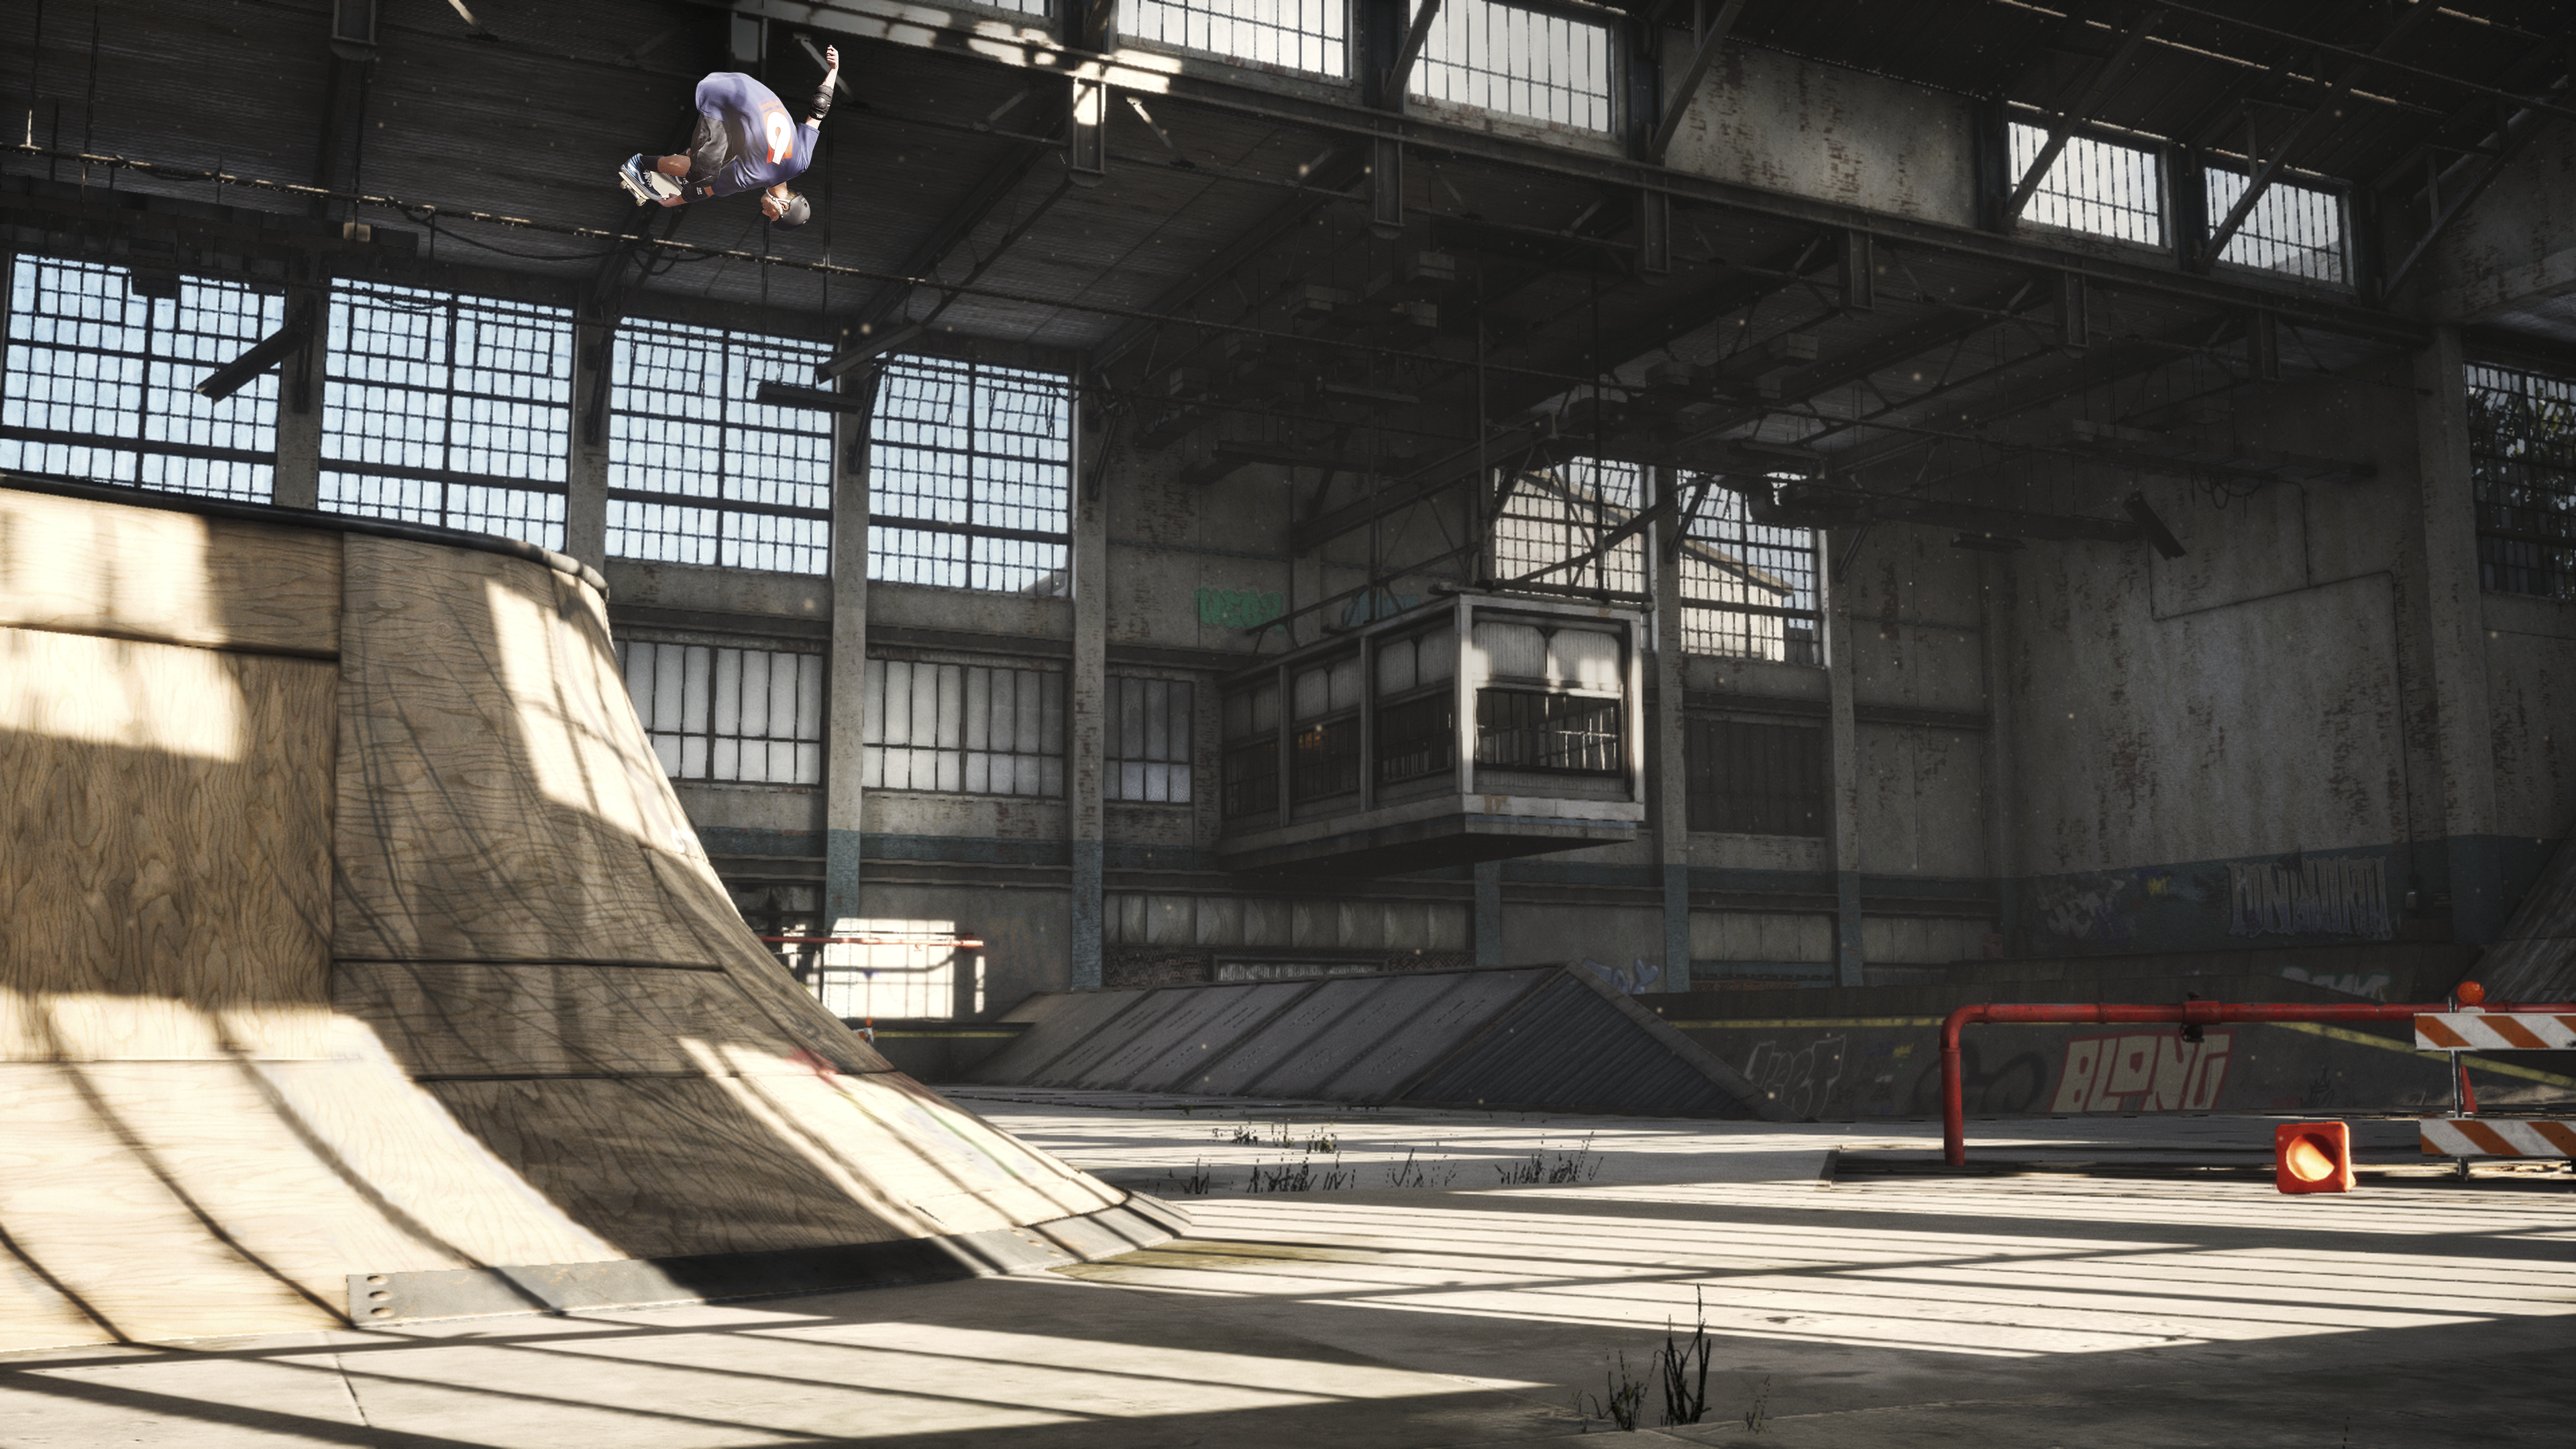 Tony Hawk's Pro Skater 1 + 2 - Gallery Screenshot 10